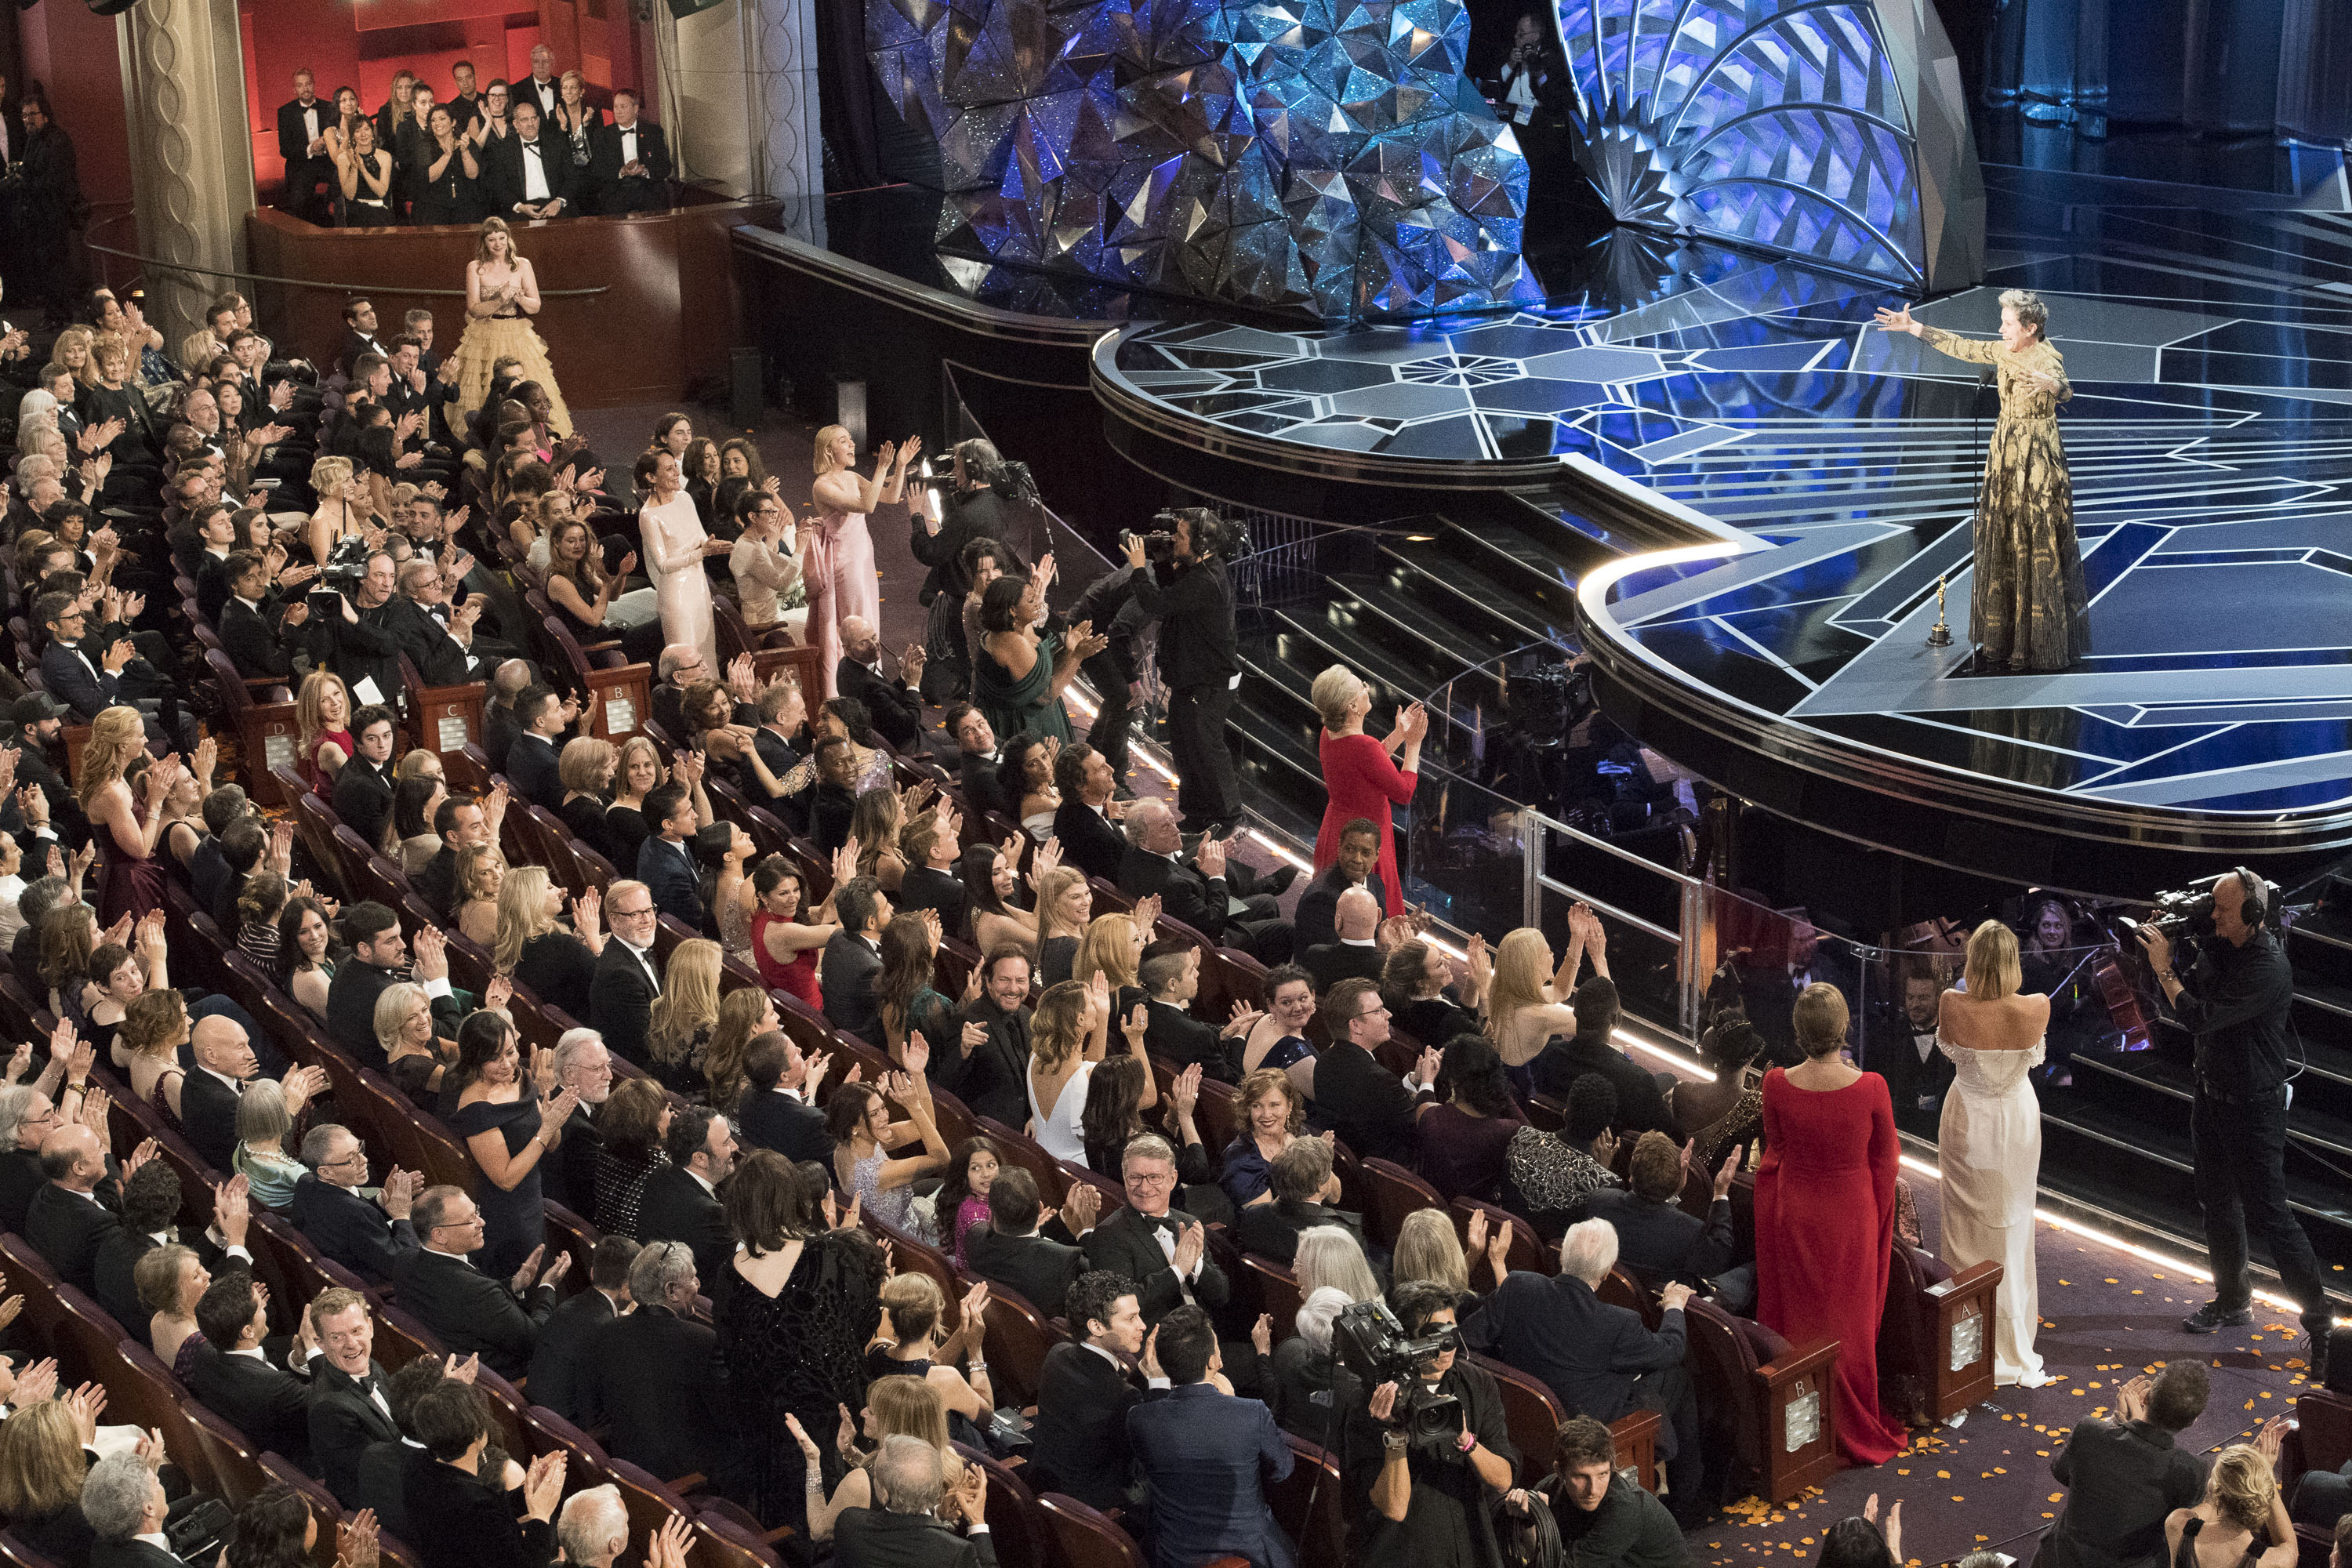 Female Oscar nominees stand in the audience as Frances McDormand delivers her Oscars speech.